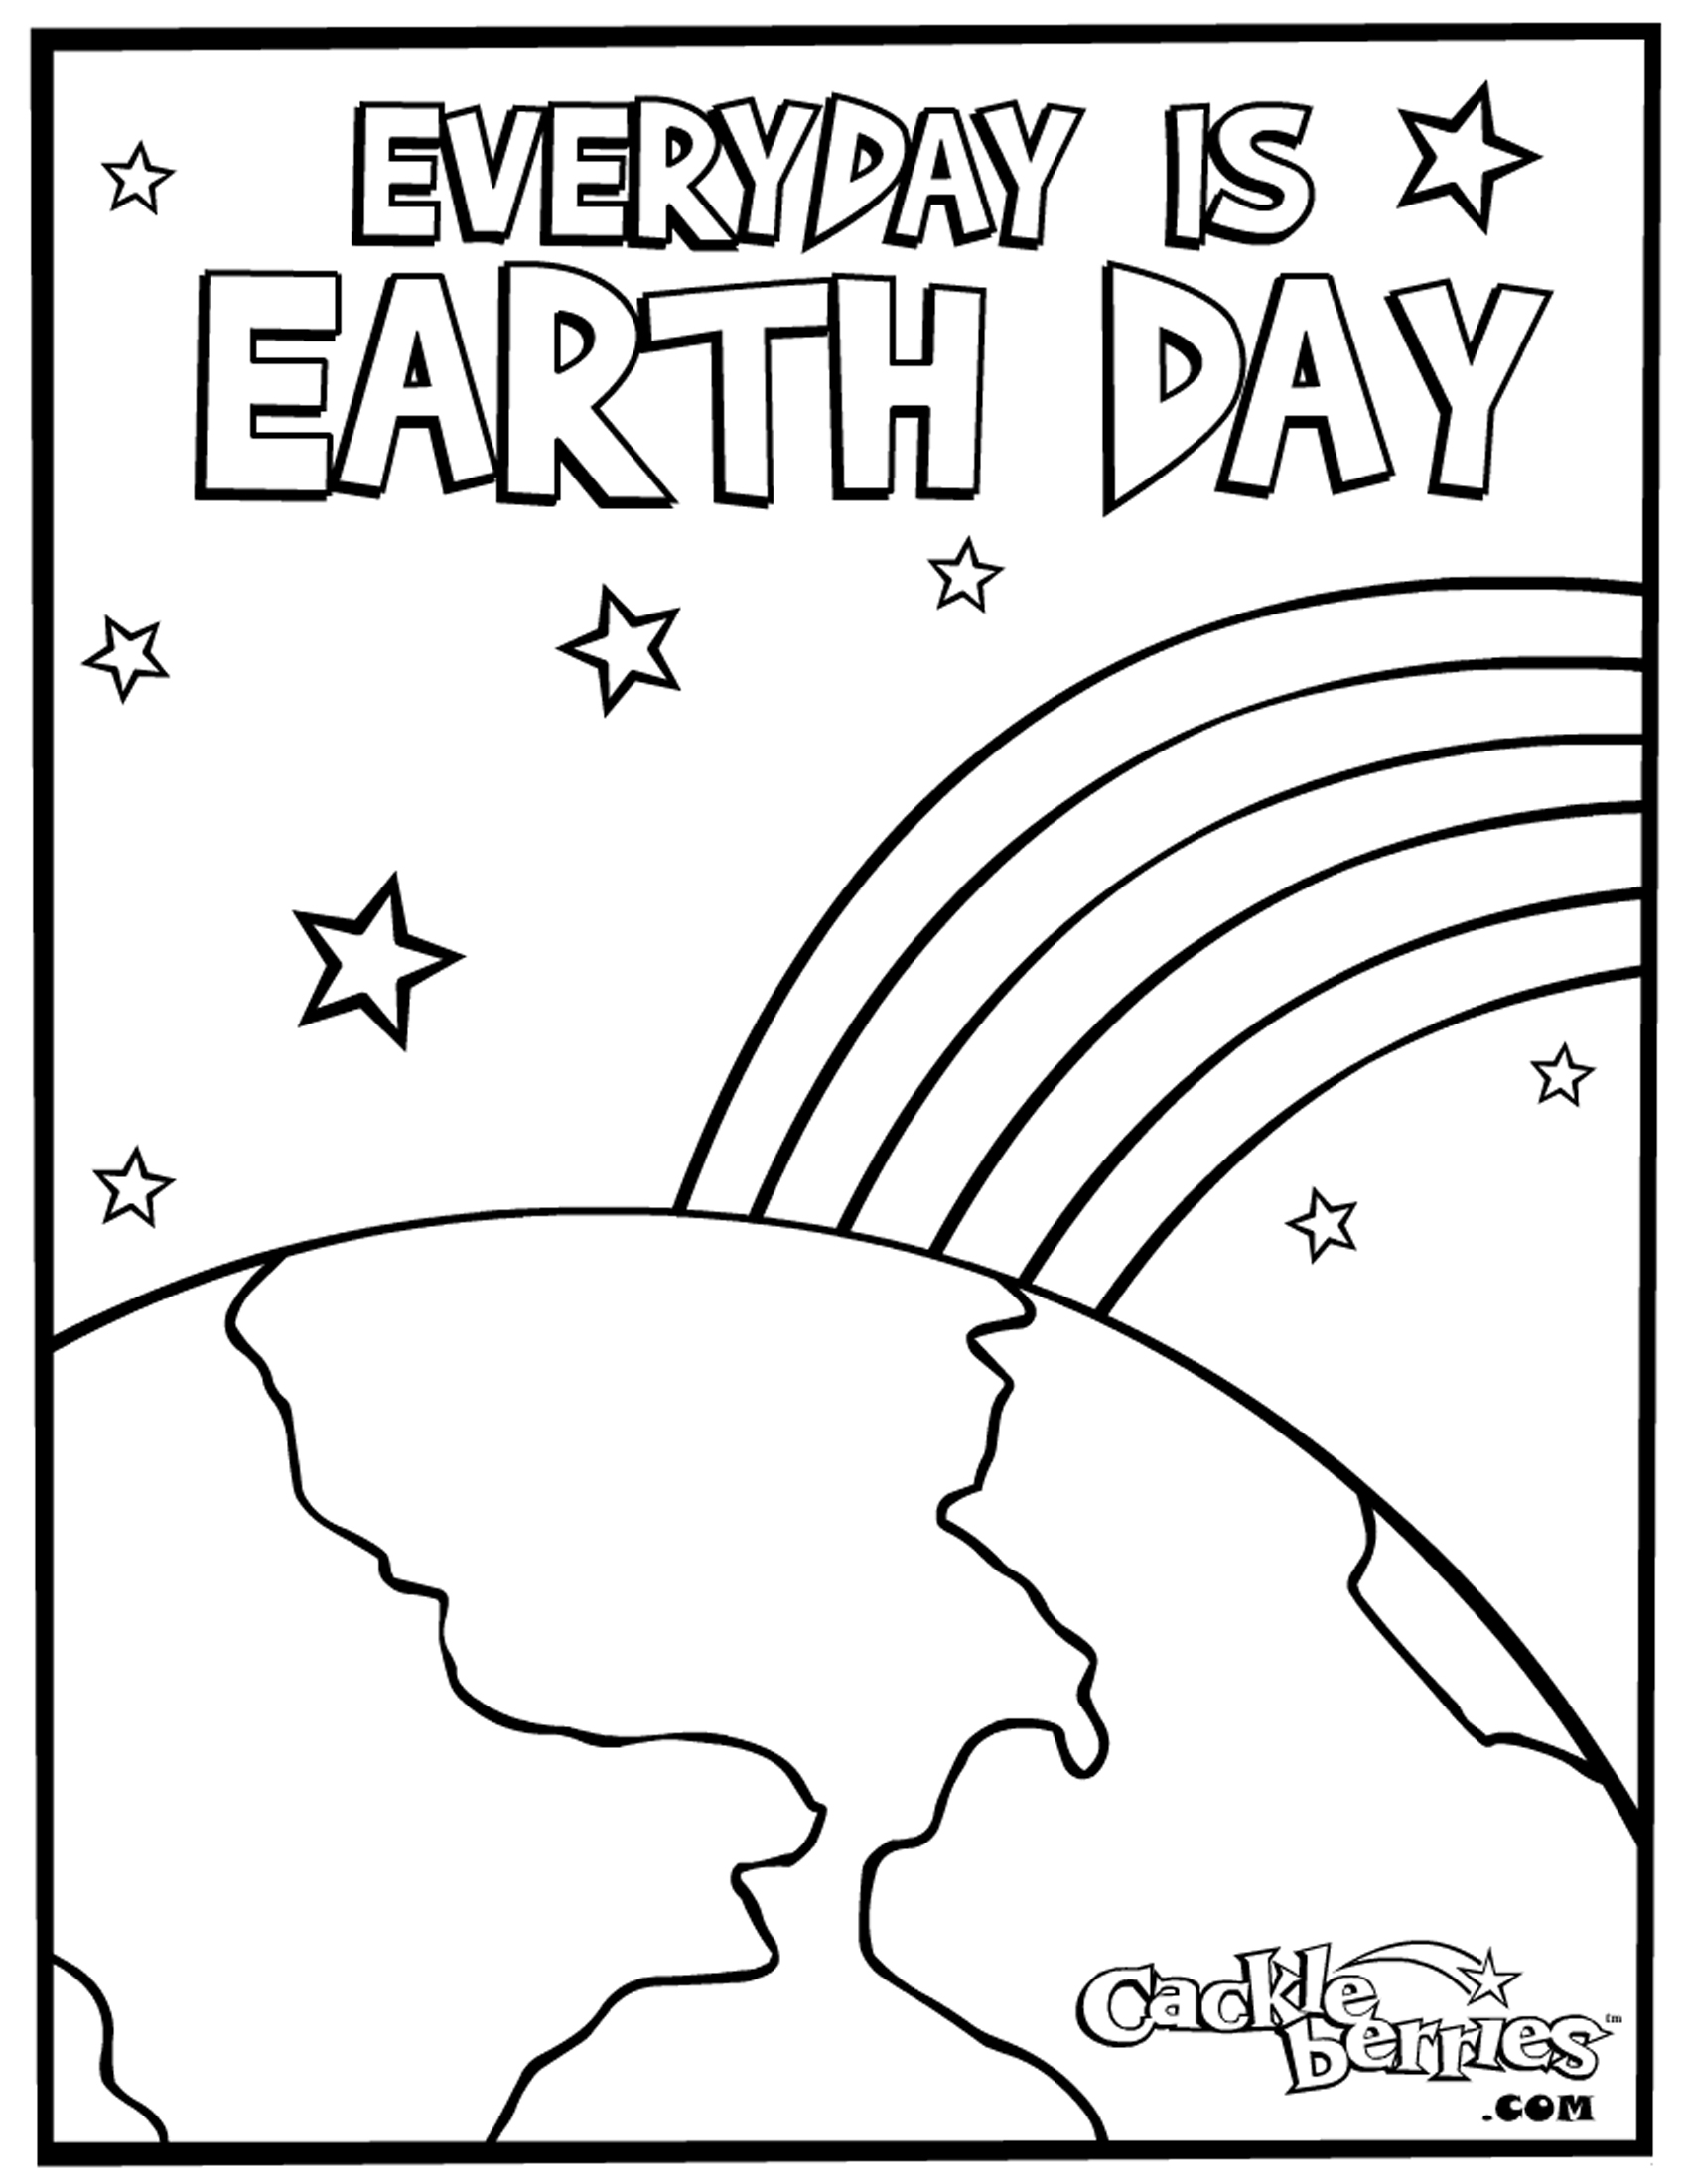 1700x2200 Lavishly Use Resources Wisely Coloring Page Earth Day Pages